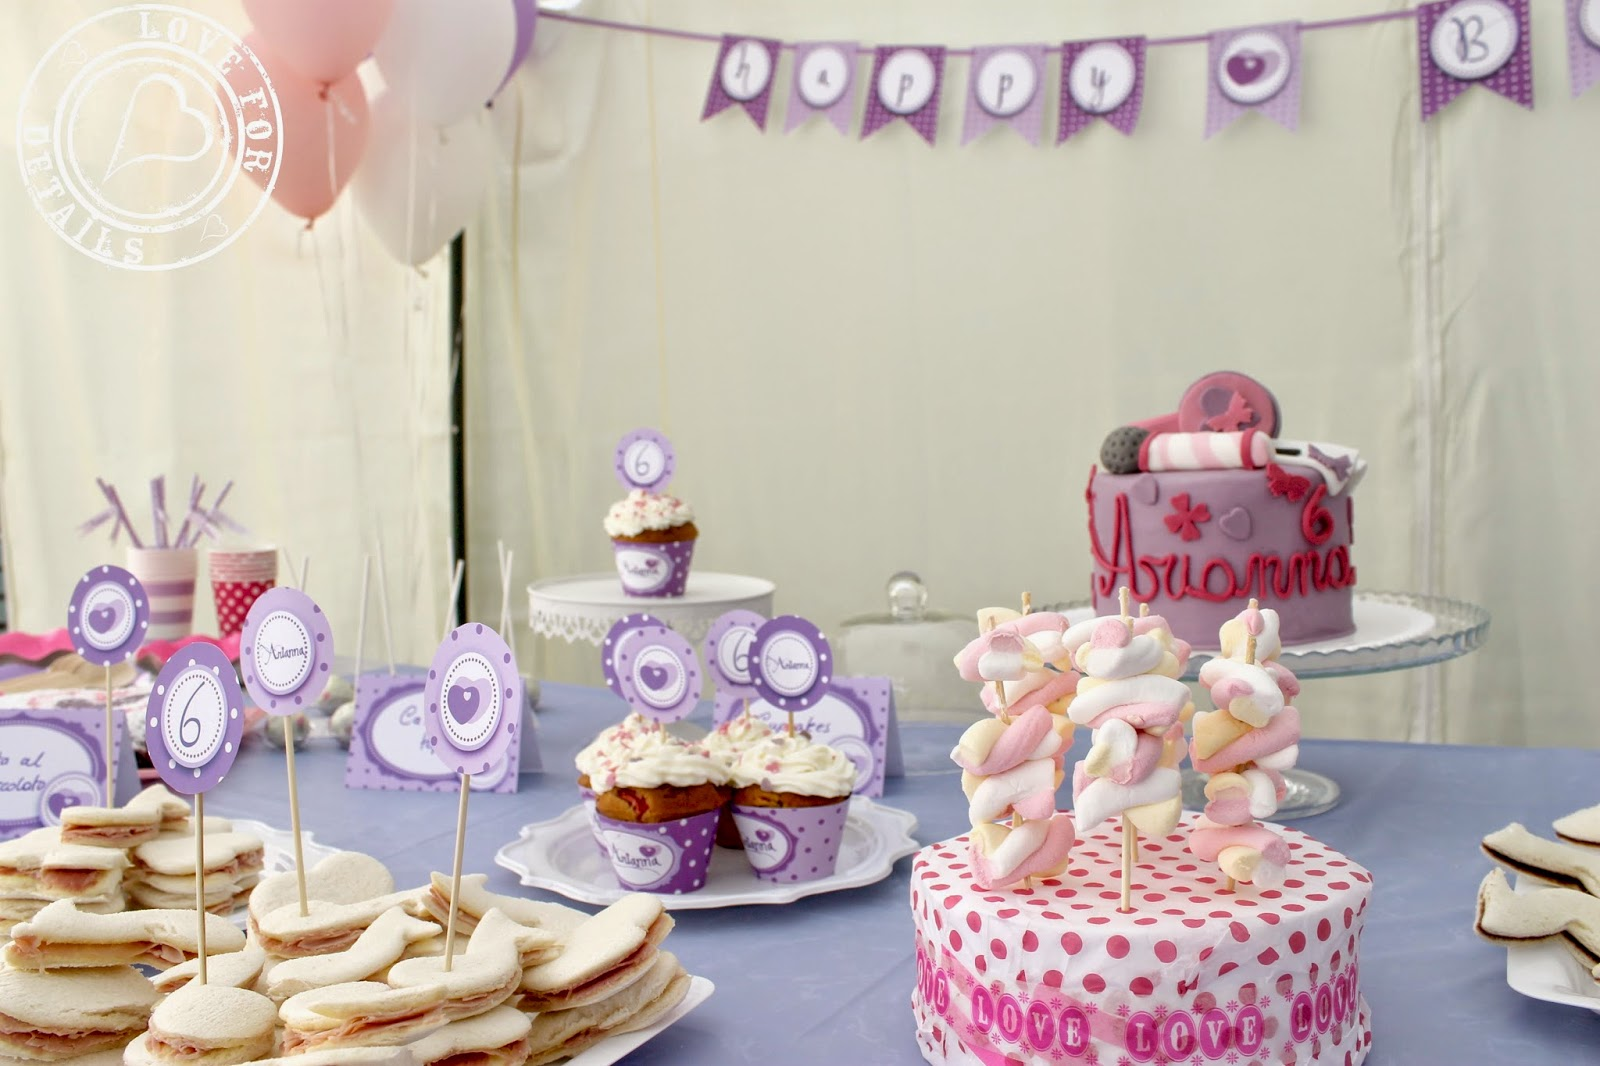 Violetta Party decorations